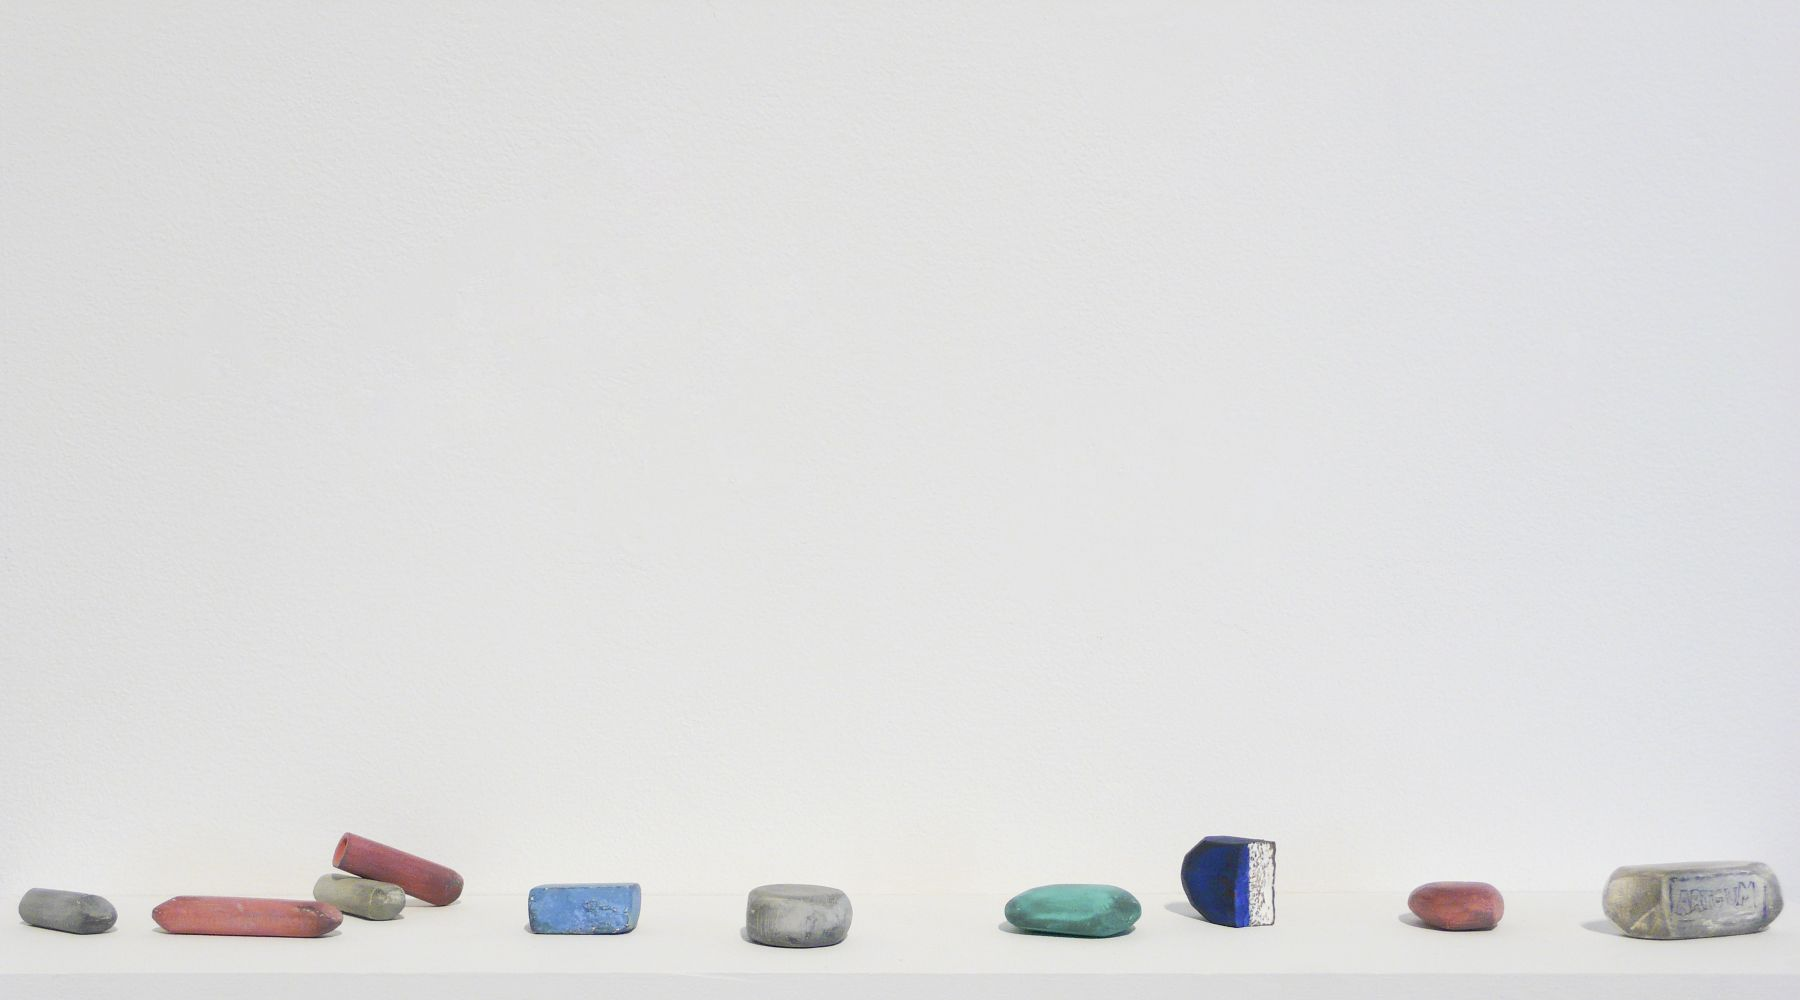 DAVID ADAMO Untitled (10 erasers)